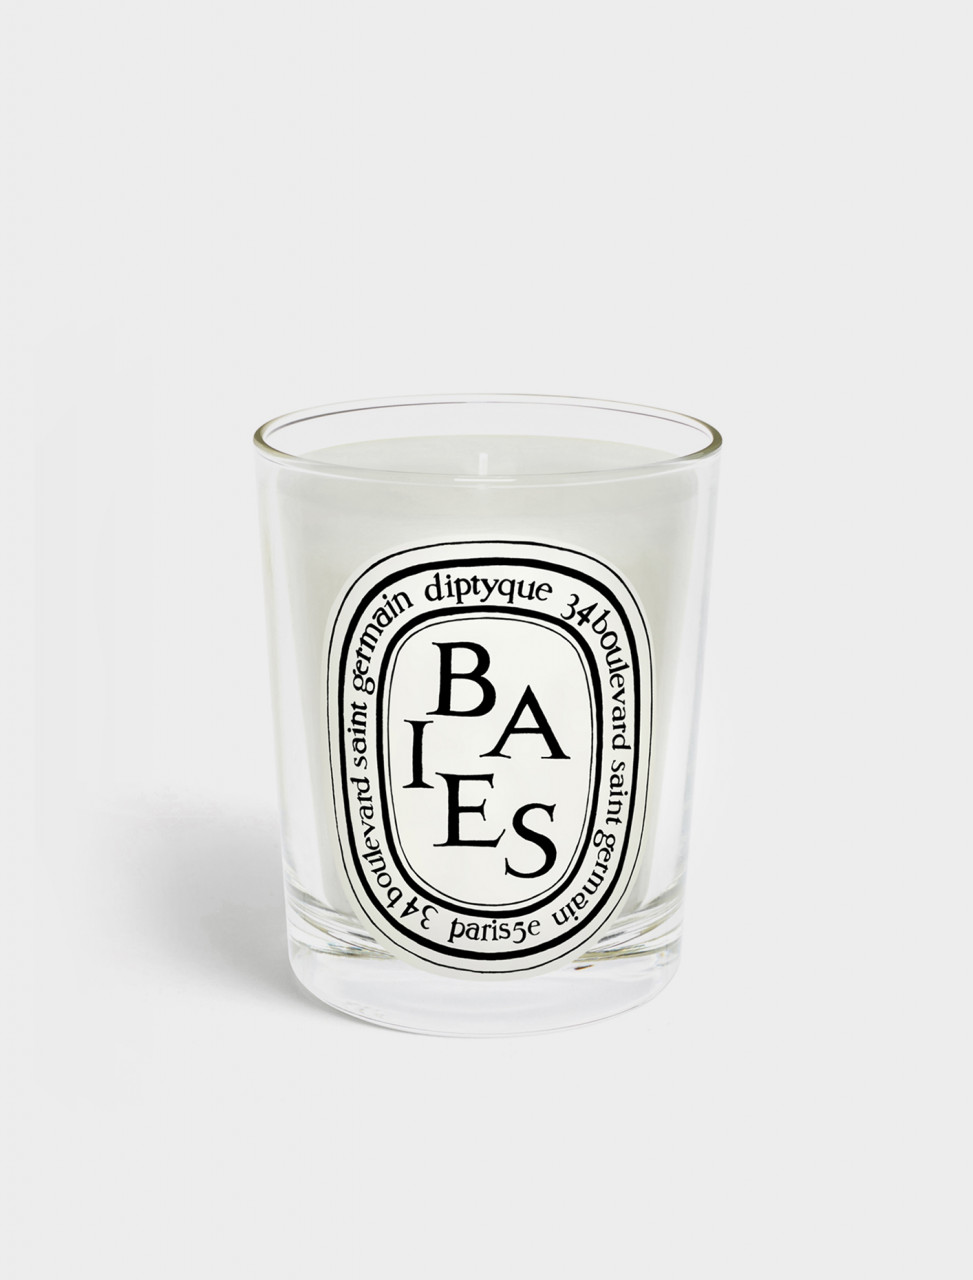 337-B1 DIPTYQUE BAIES STANDARD CANDLE